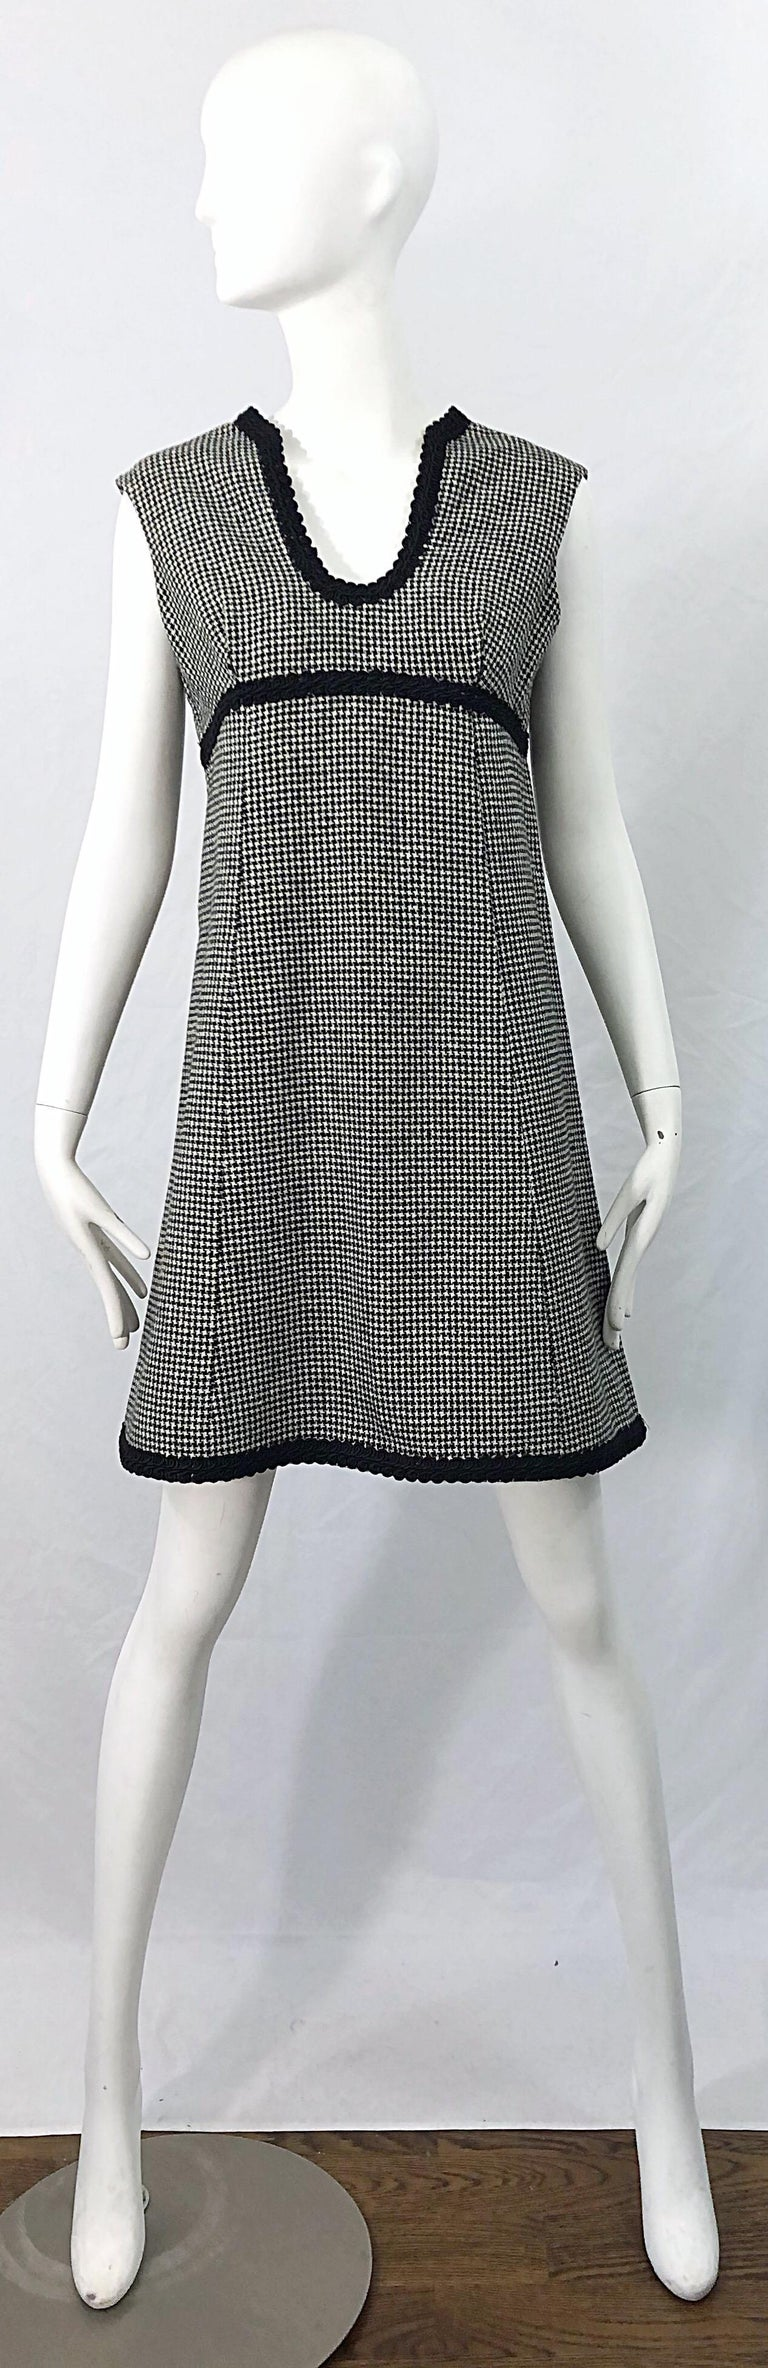 1960s Mamselle by Betty Carol Black and White Houndstooth Wool 60s A Line Dress For Sale 9